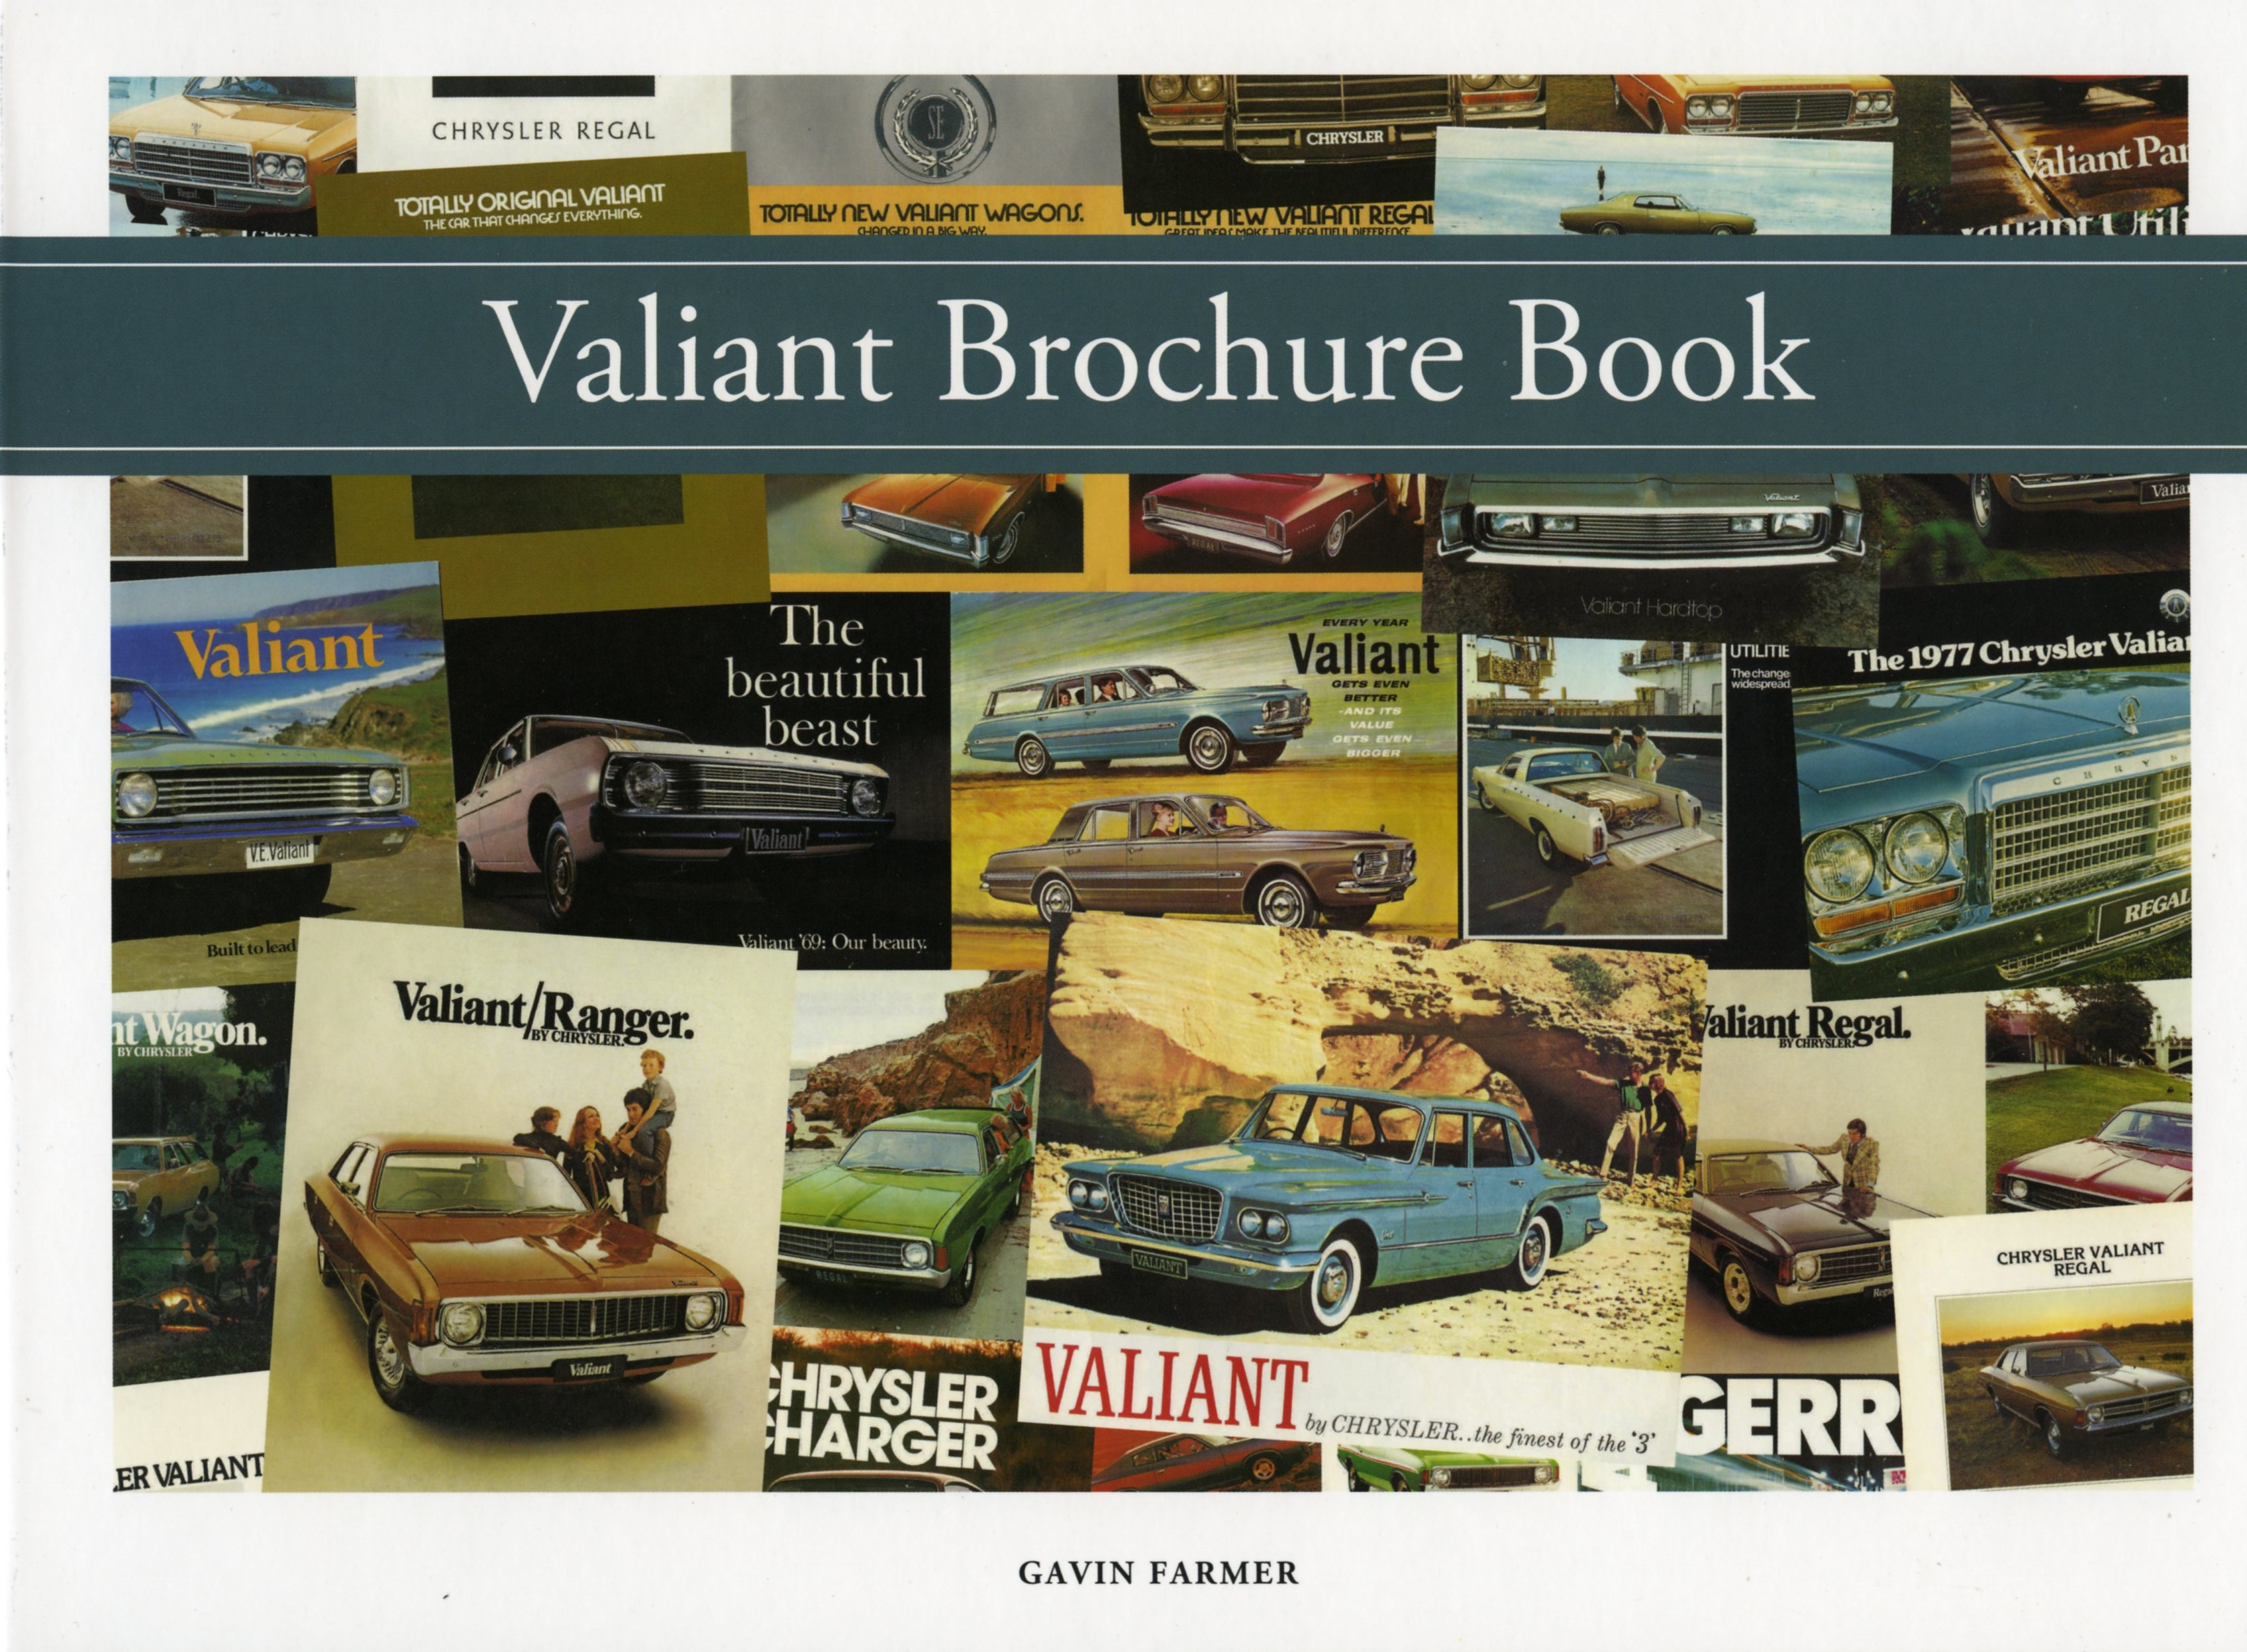 Valiant Brochure Book by Gavin Farmer